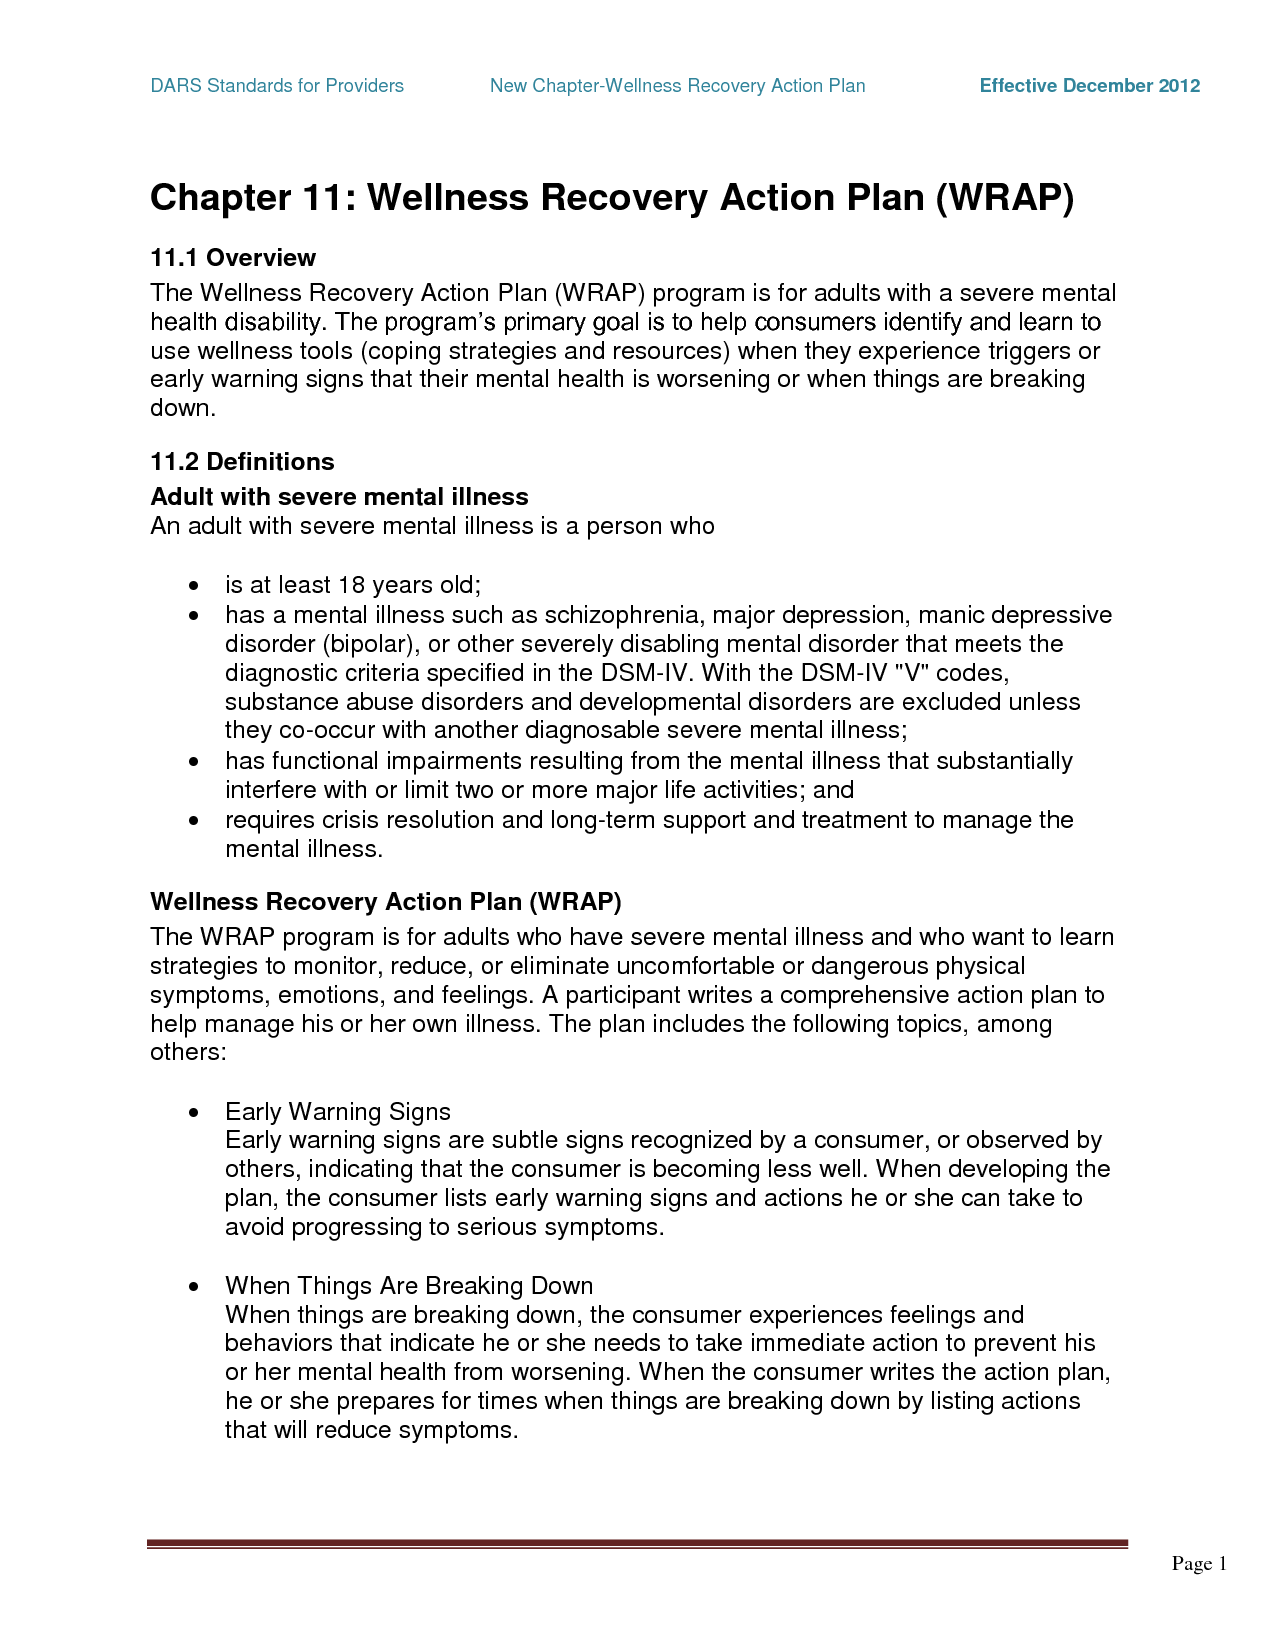 Wrap mental health chapter 11 wellness recovery action for Mental health crisis management plan template